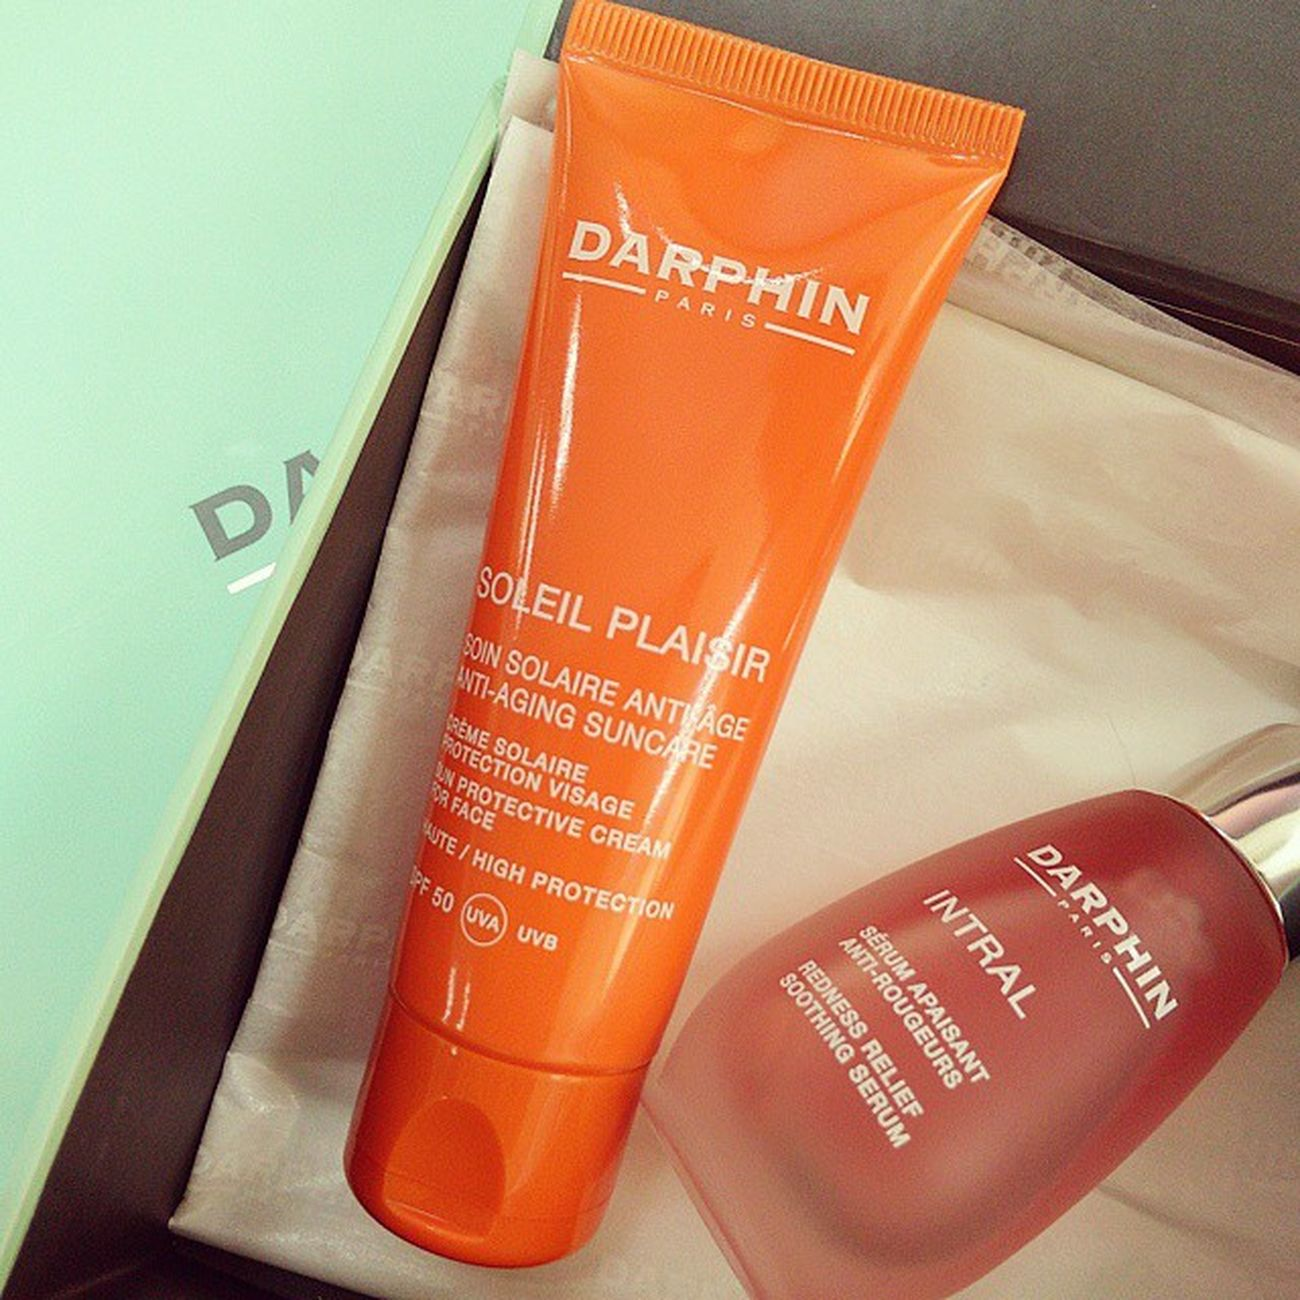 Darphin 歡愉豔陽清爽防曬隔離霜Darphin Sun Protective Cream for Face SPF 50 Darphin Sunprotection Skincare Twig Mobile01 愛曼達